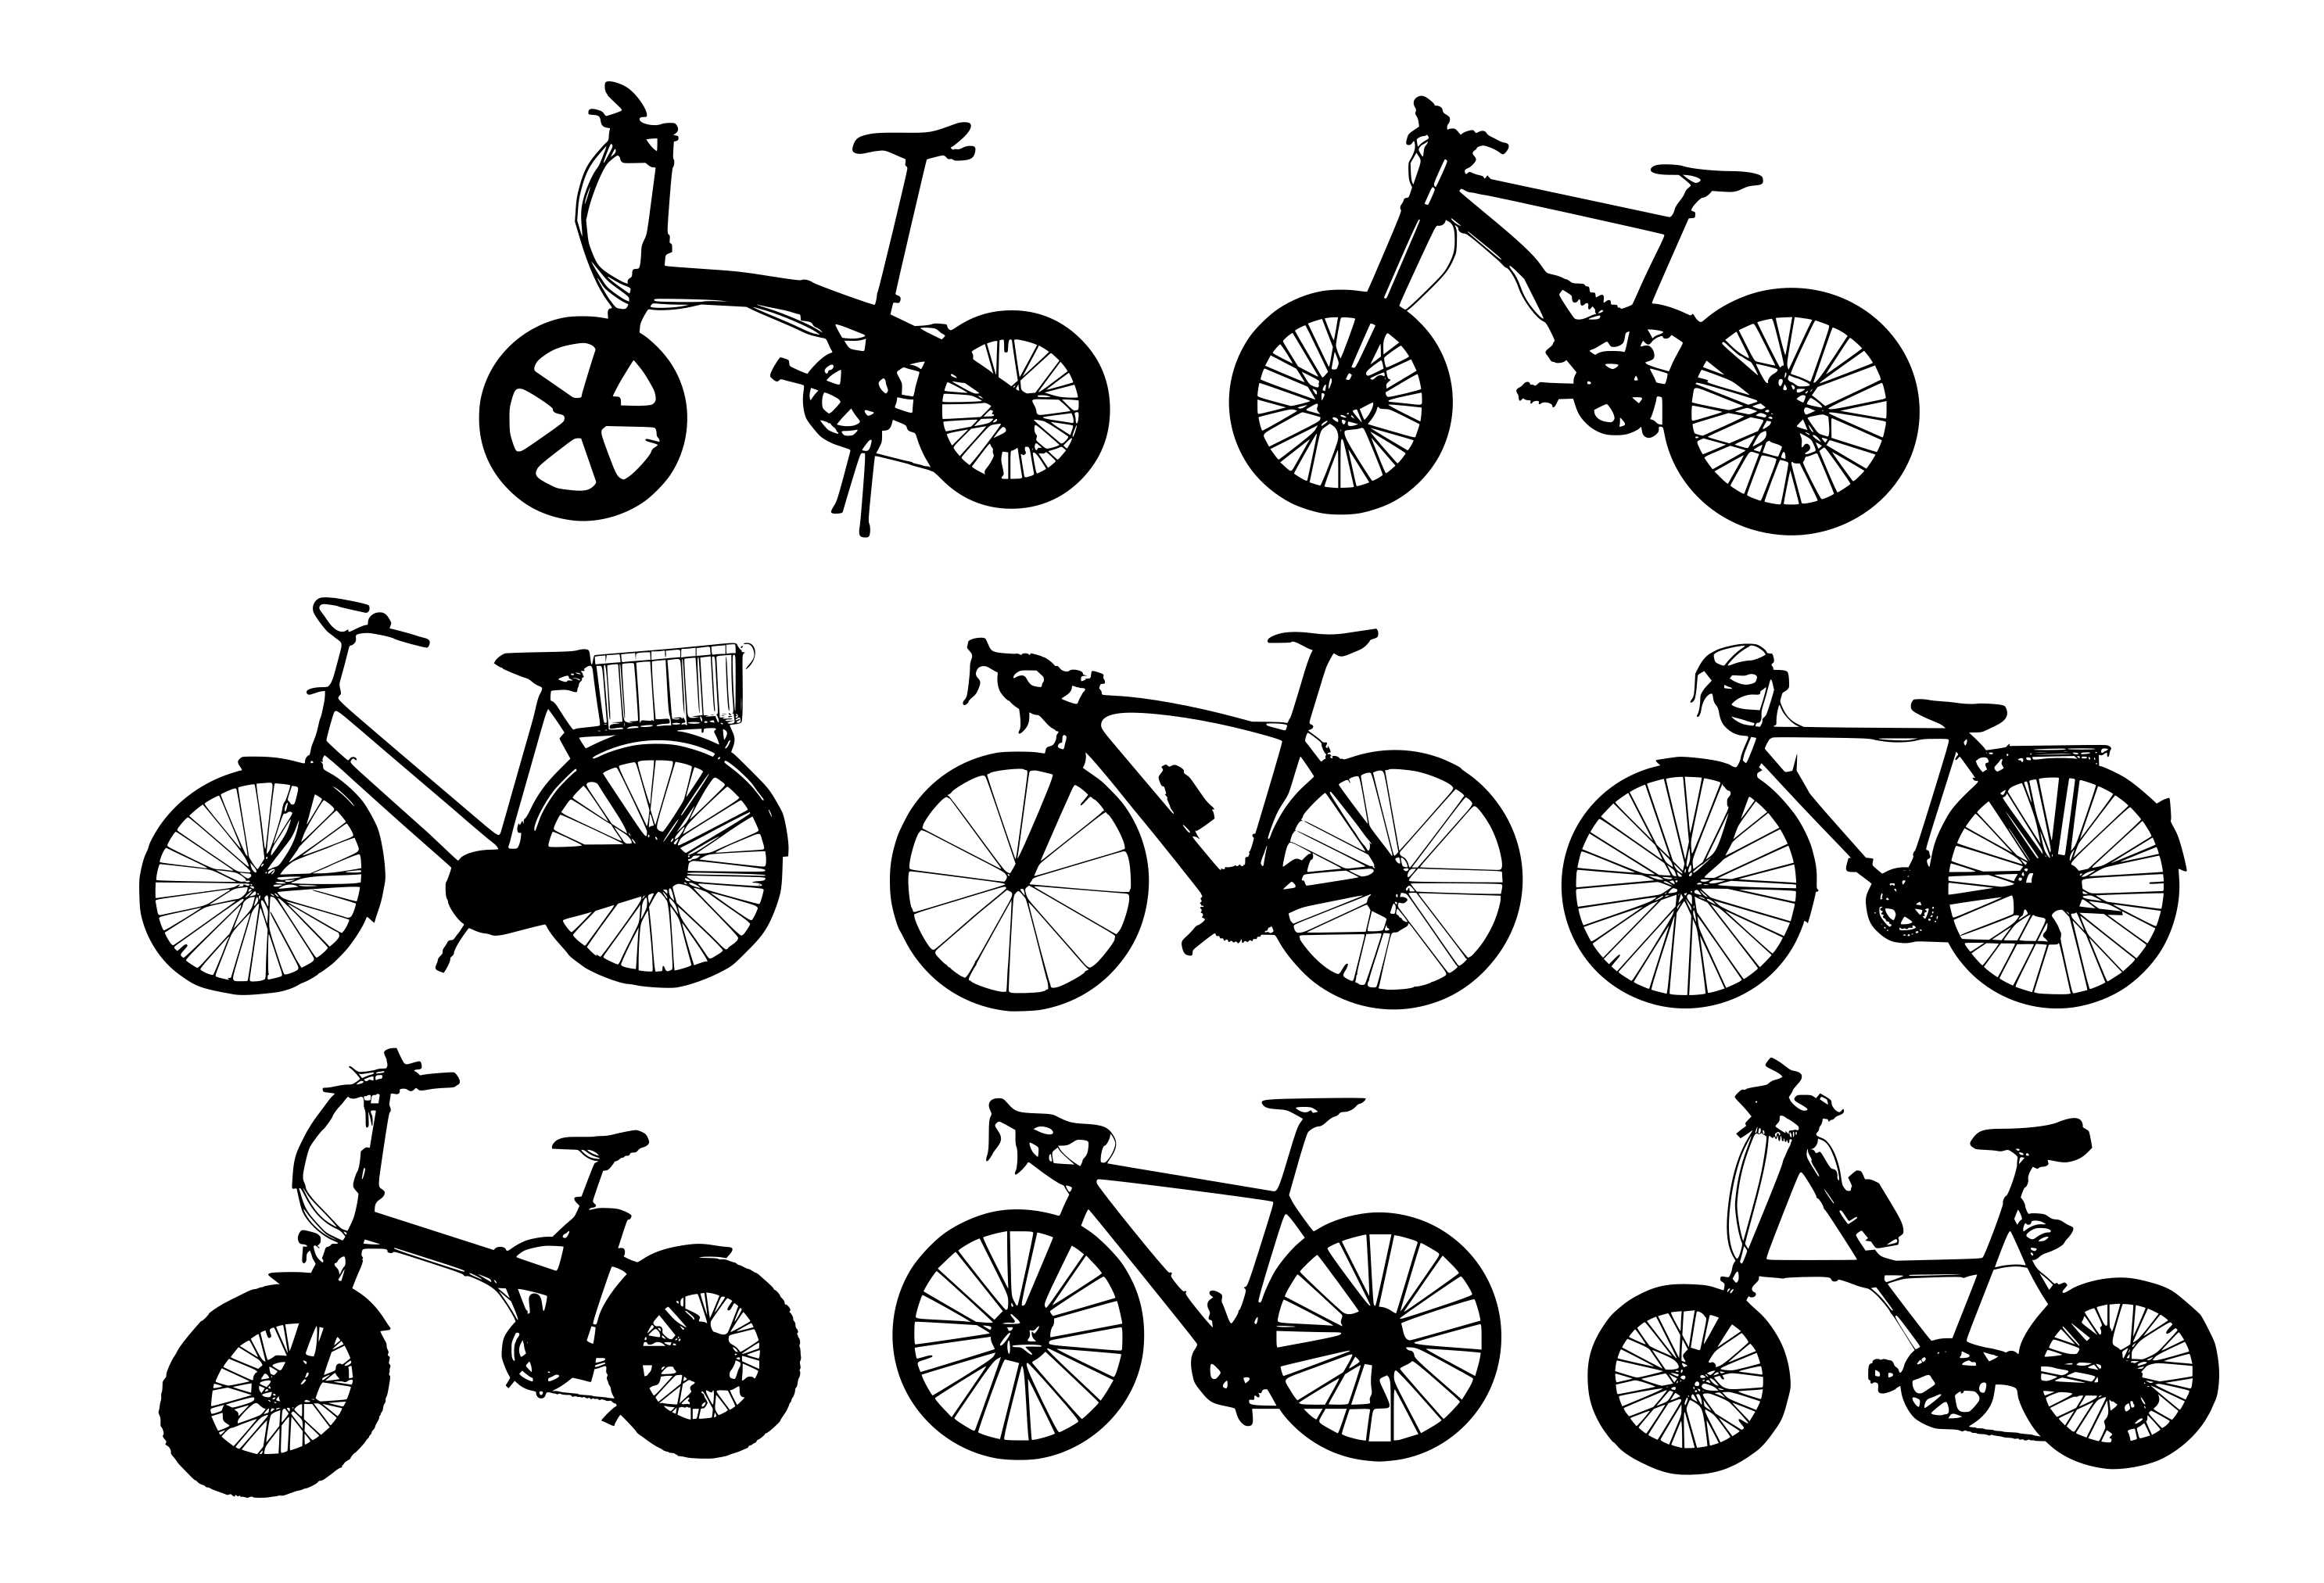 8-bicycle-silhouette-cover.jpg